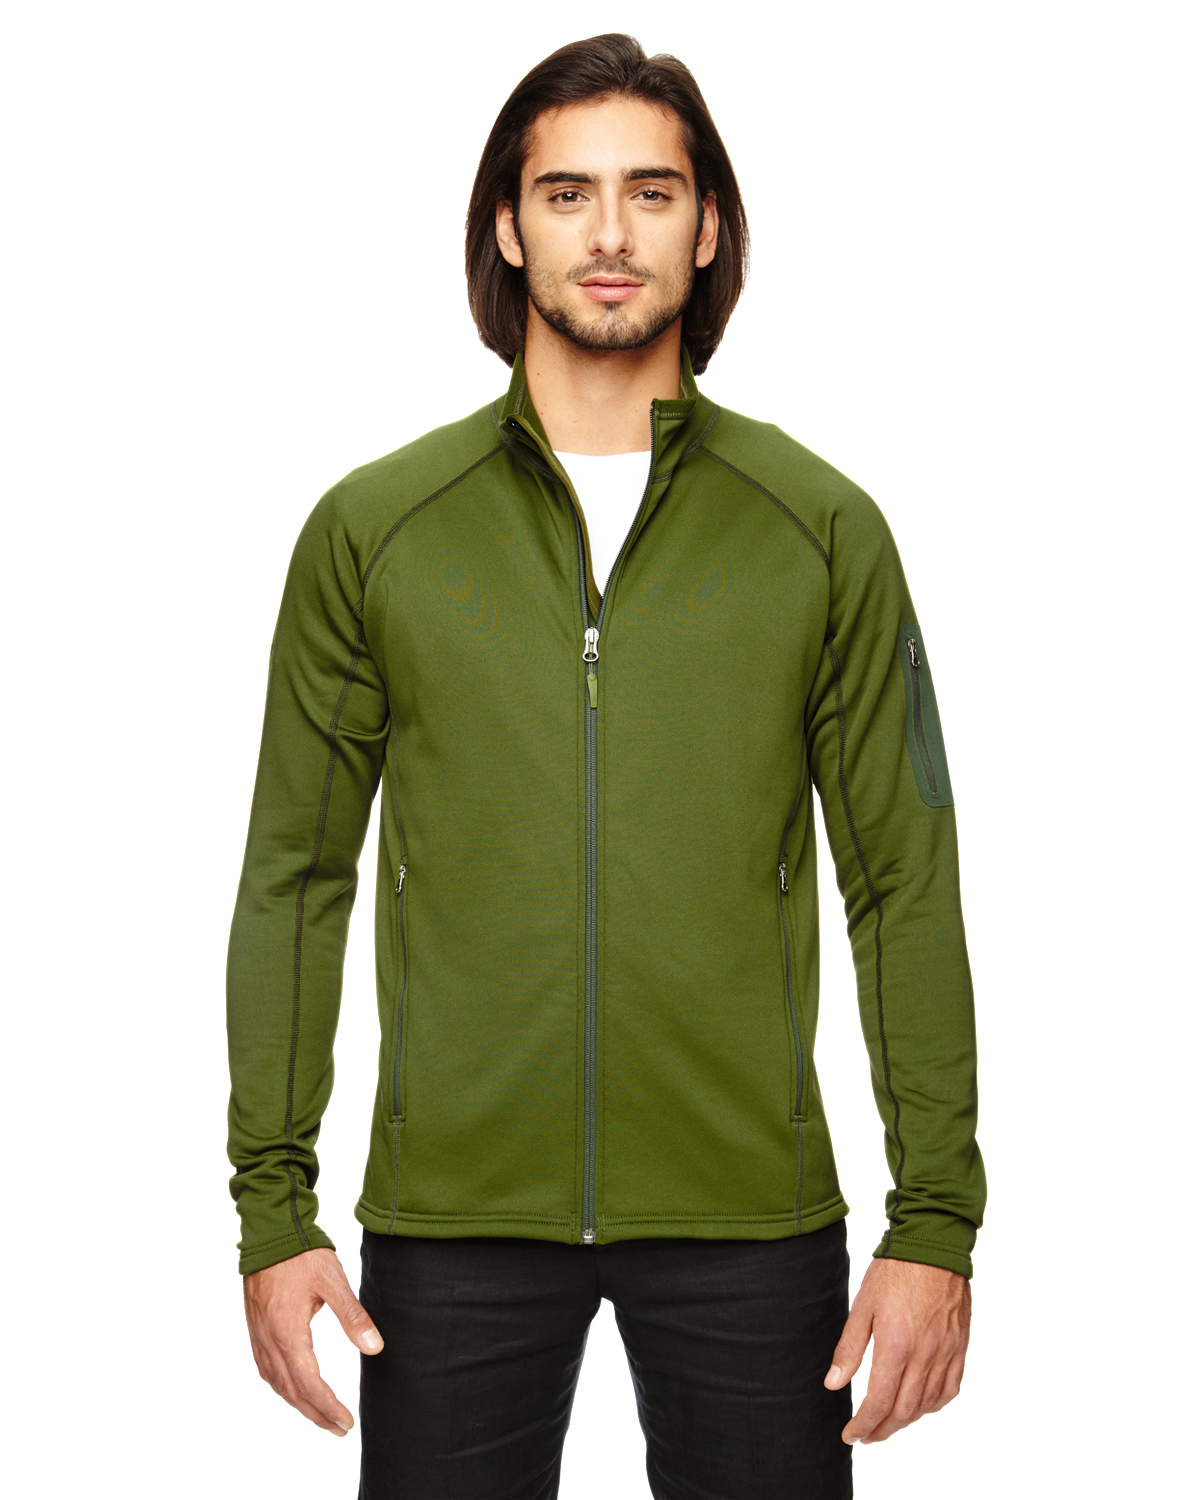 Marmot - 80840, Men's Stretch Fleece Jacket - Logo Masters International